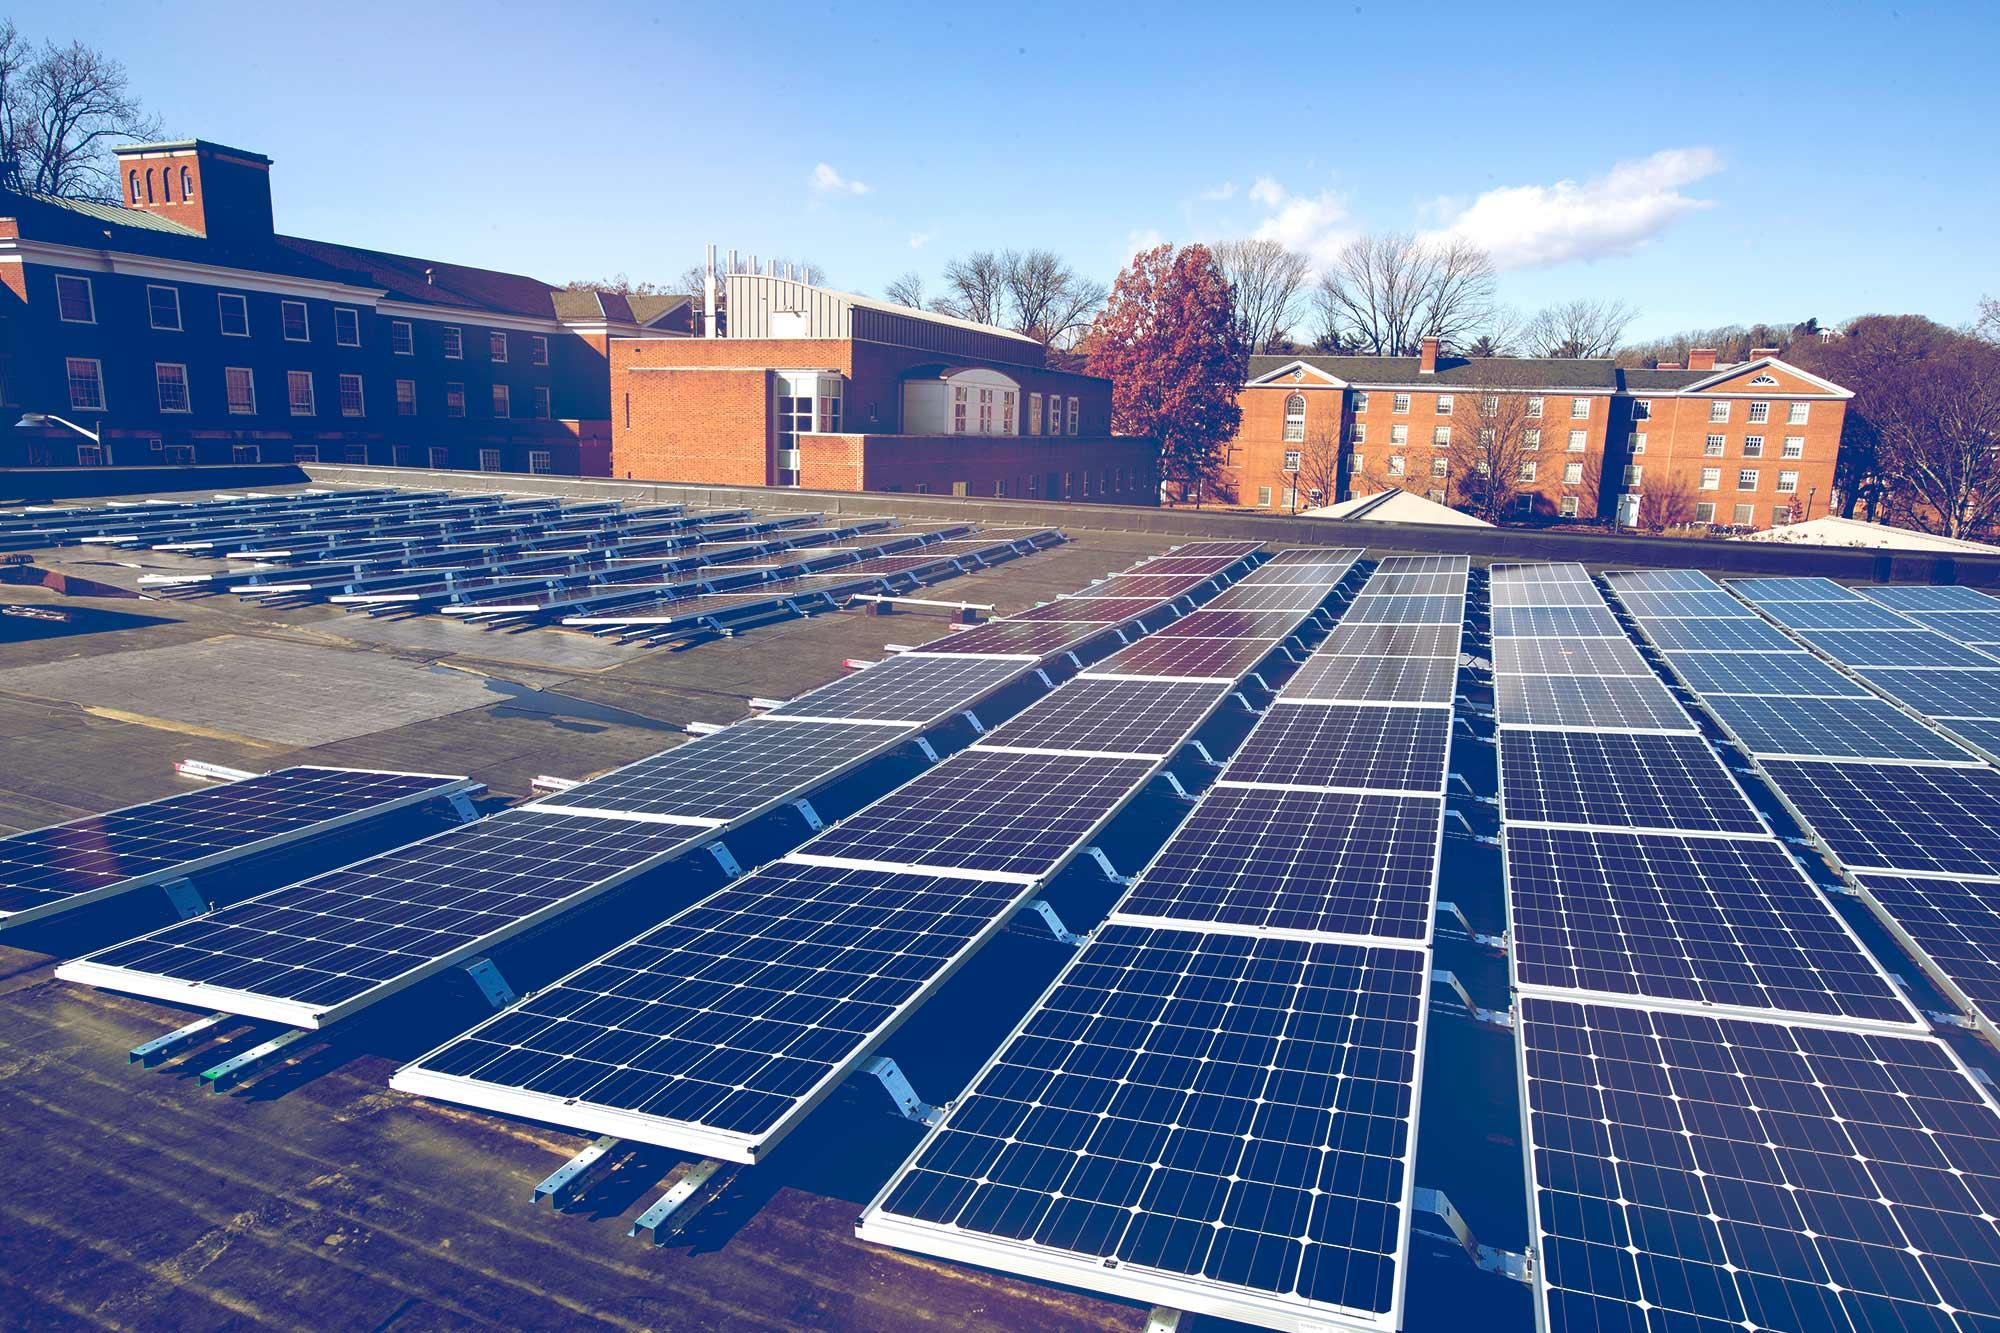 The University is using some of its roof space to generate solar power, part of its commitment to reduce its greenhouse gas footprint.